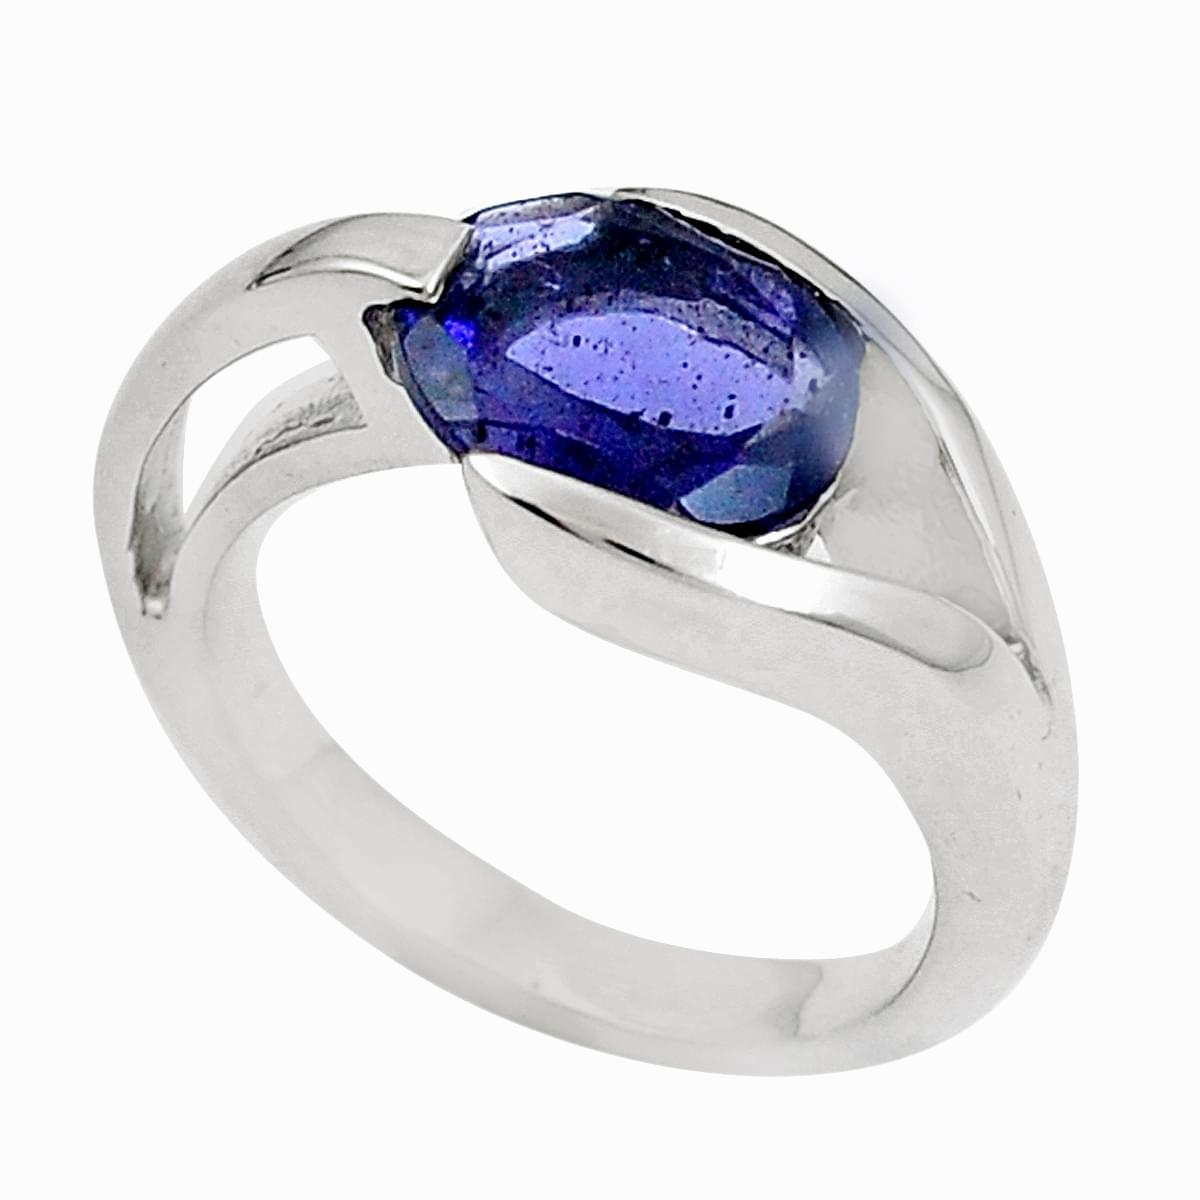 Solid 925 Sterling Silver Two Tone Ring Natural Iolite Gemstone Designer Jewelry Size 10